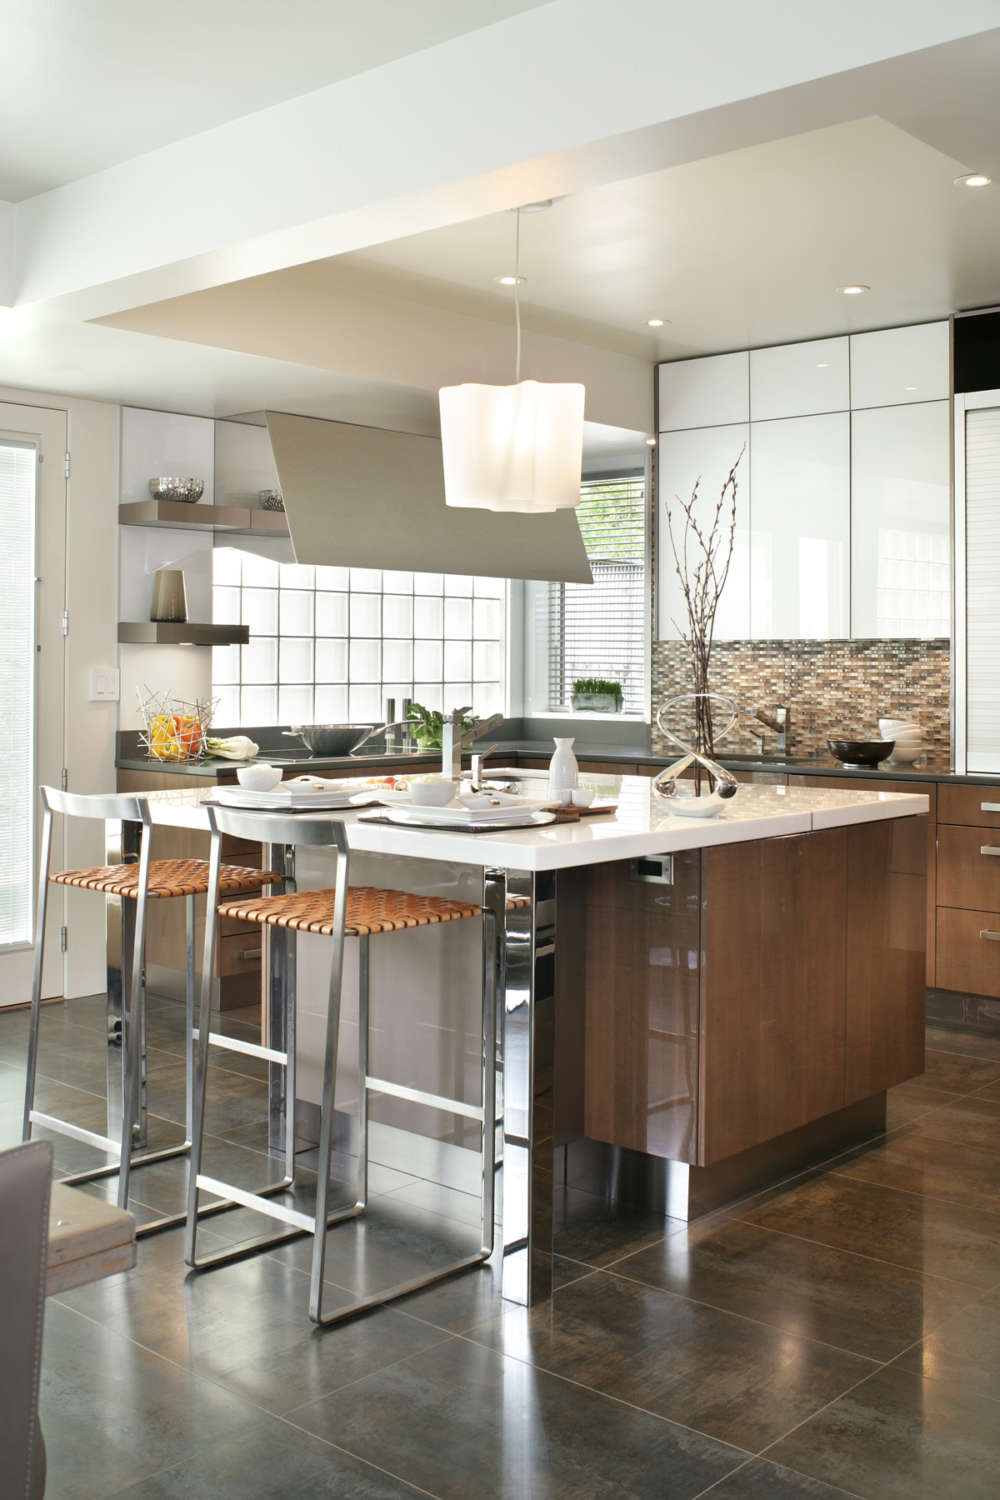 Contemporary kitchen with U-shape d layout features an island with polished stainless legs. Flat panel, frameless, fully custom Artcraft cabinetry is incporated in a mix of quarter-sawn anegre with a silvery finish and a high-gloss custom brown lacquer. Design by Regina Bilotta of Bilotta Kitchens.